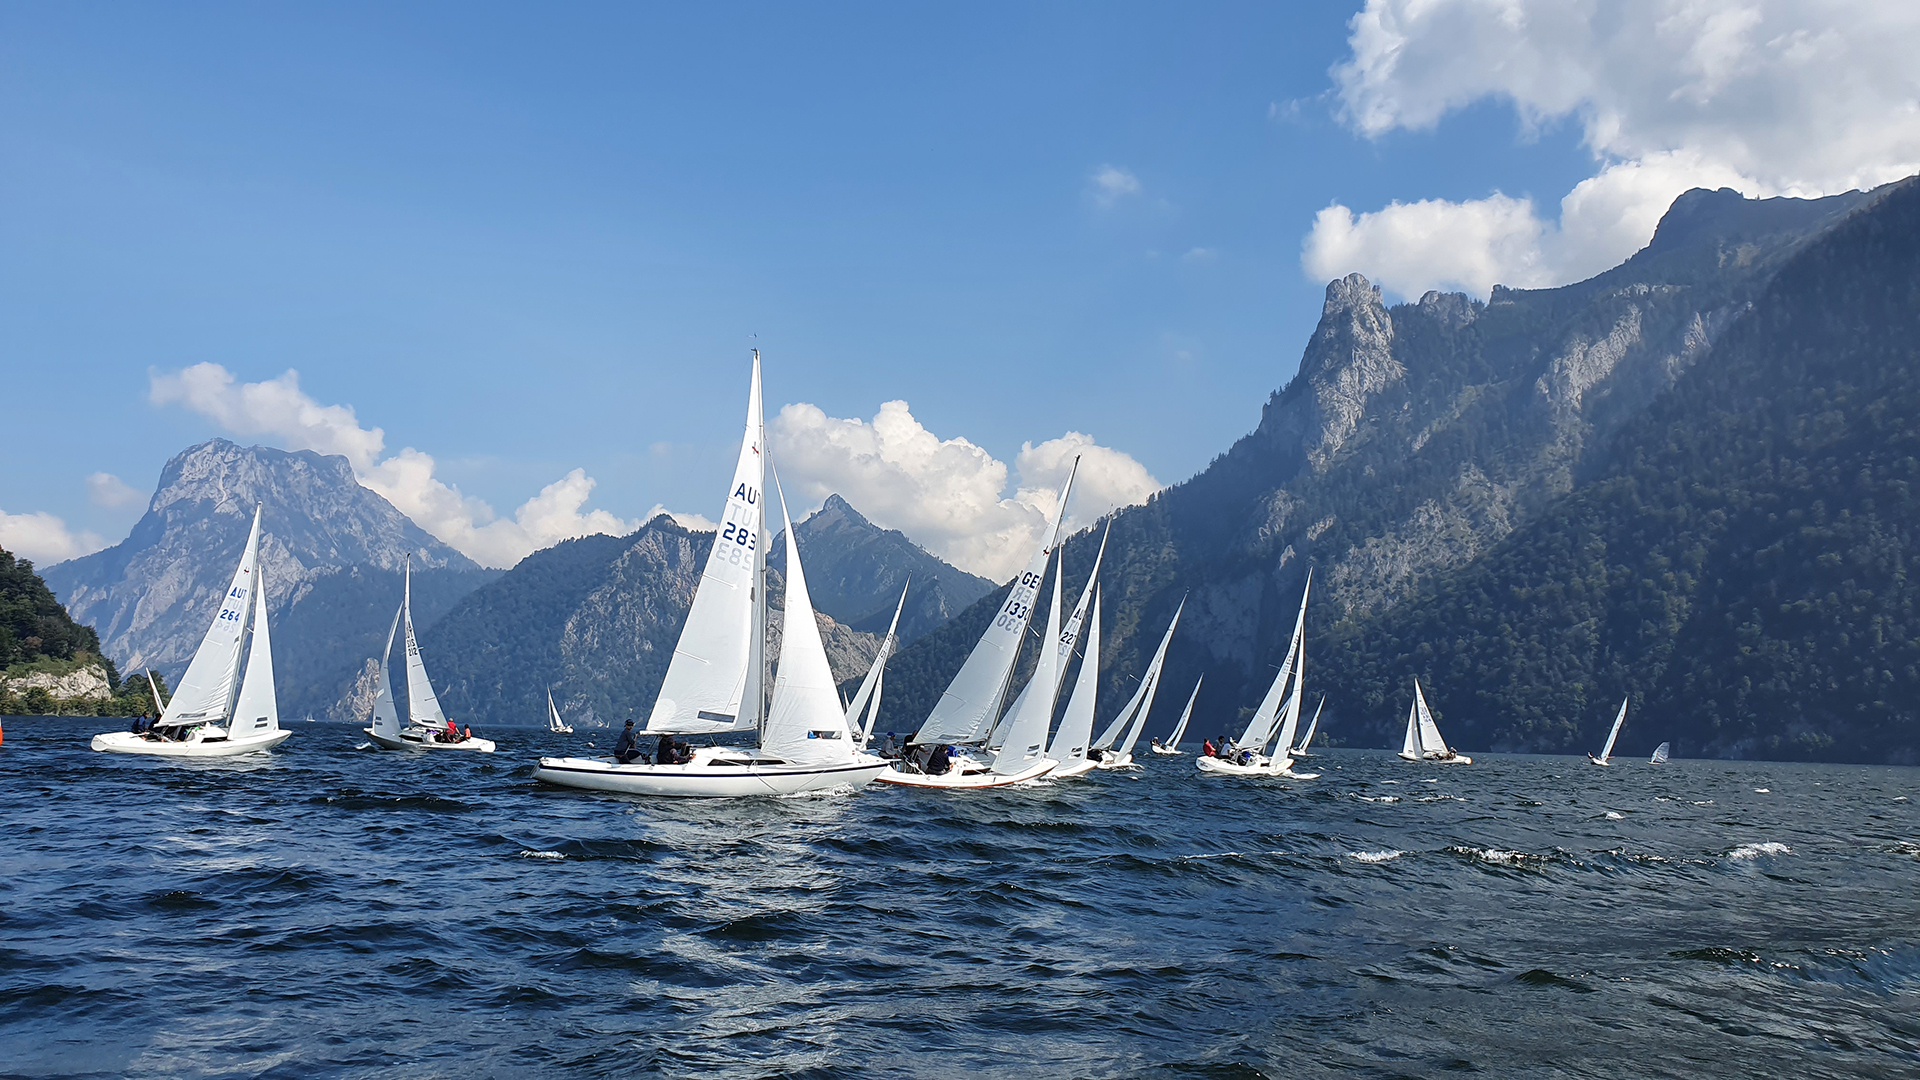 SALT SAILING | Firmenevents